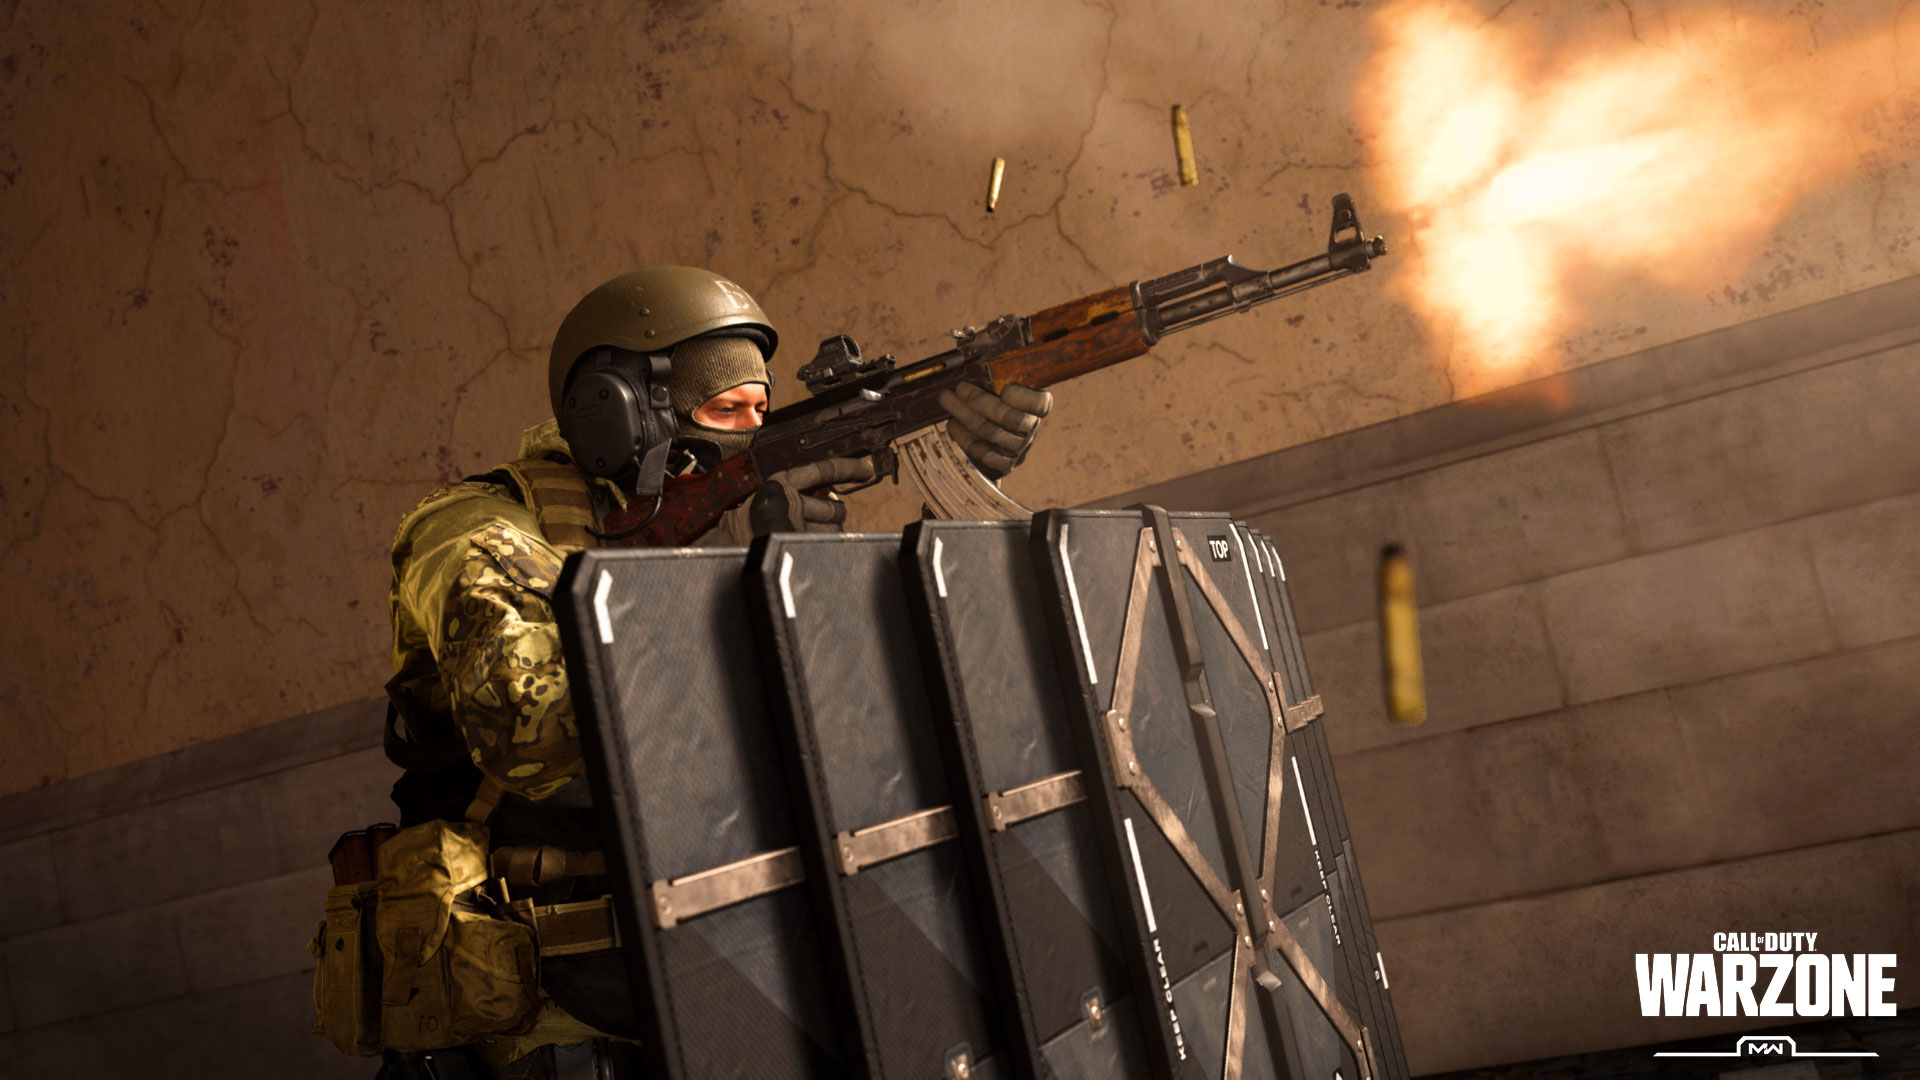 The Rank Up Report #25: Badass Ronin and 25 Warzone Tip Celebration - Image 2